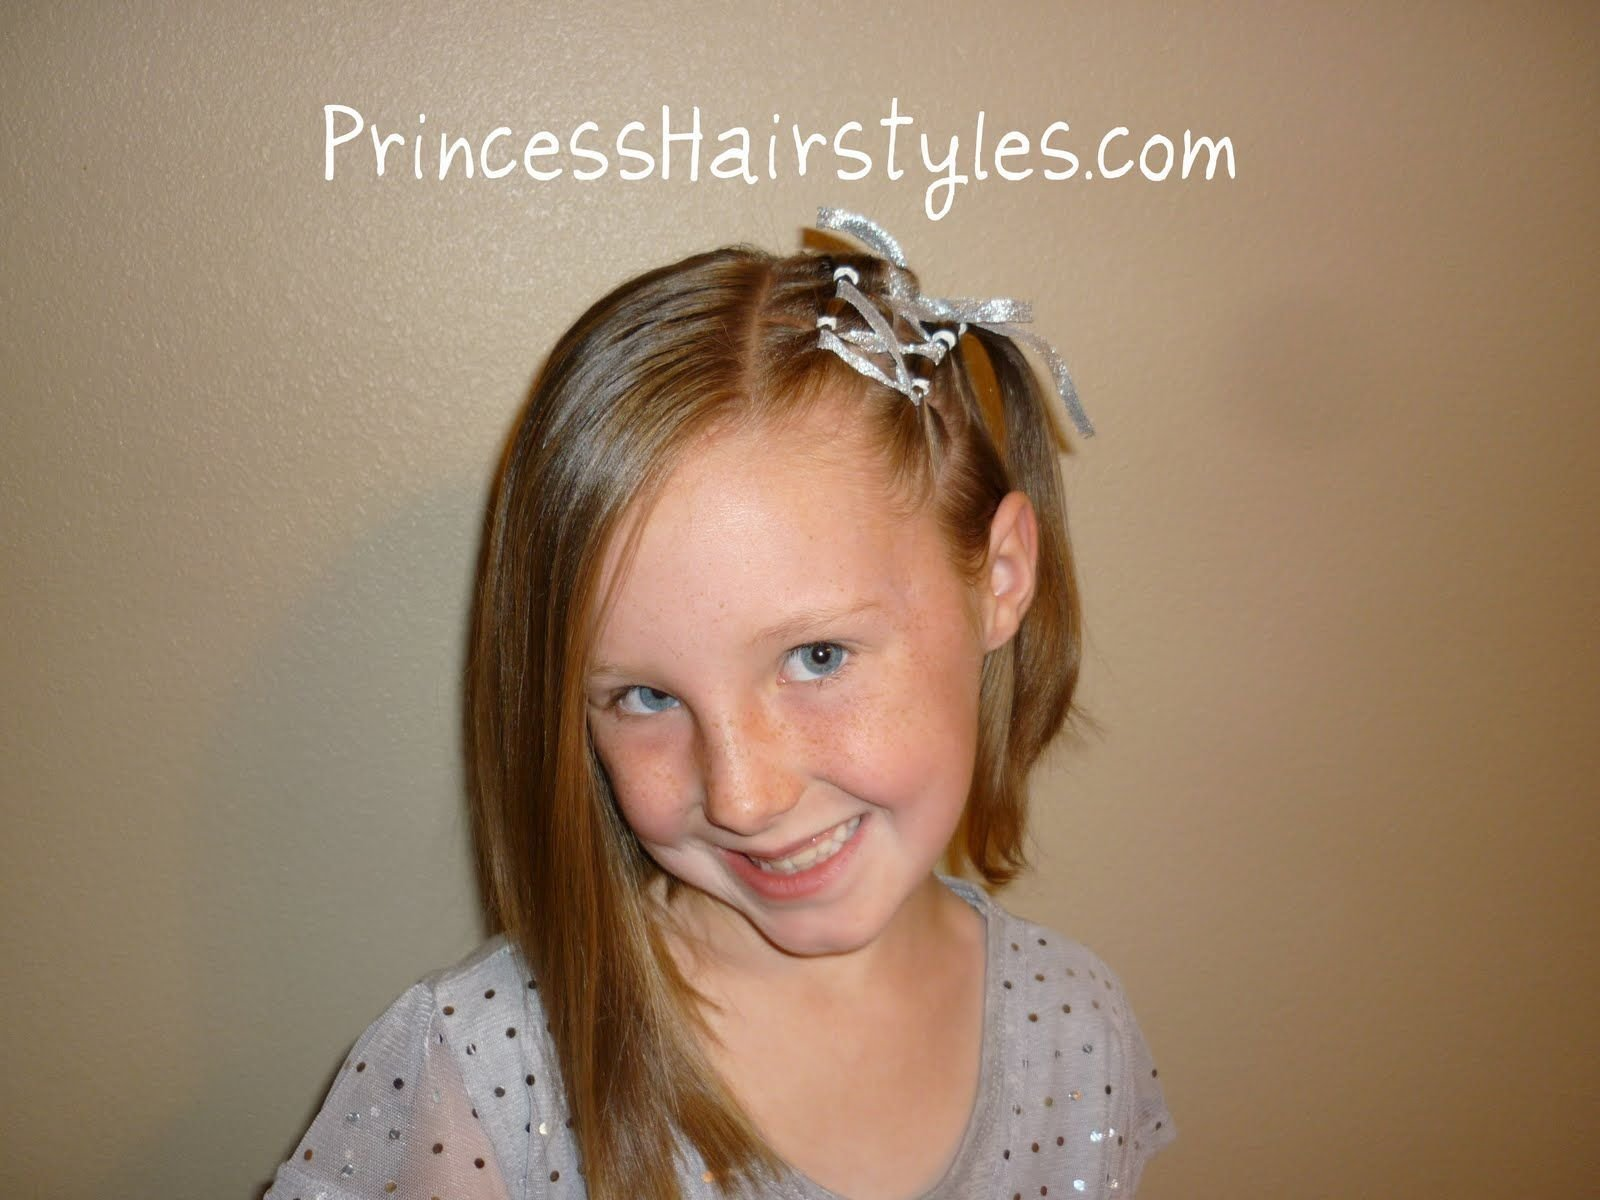 New Top 10 Haircuts For 12 Year Olds Girls For 2017 Hair Ideas With Pictures